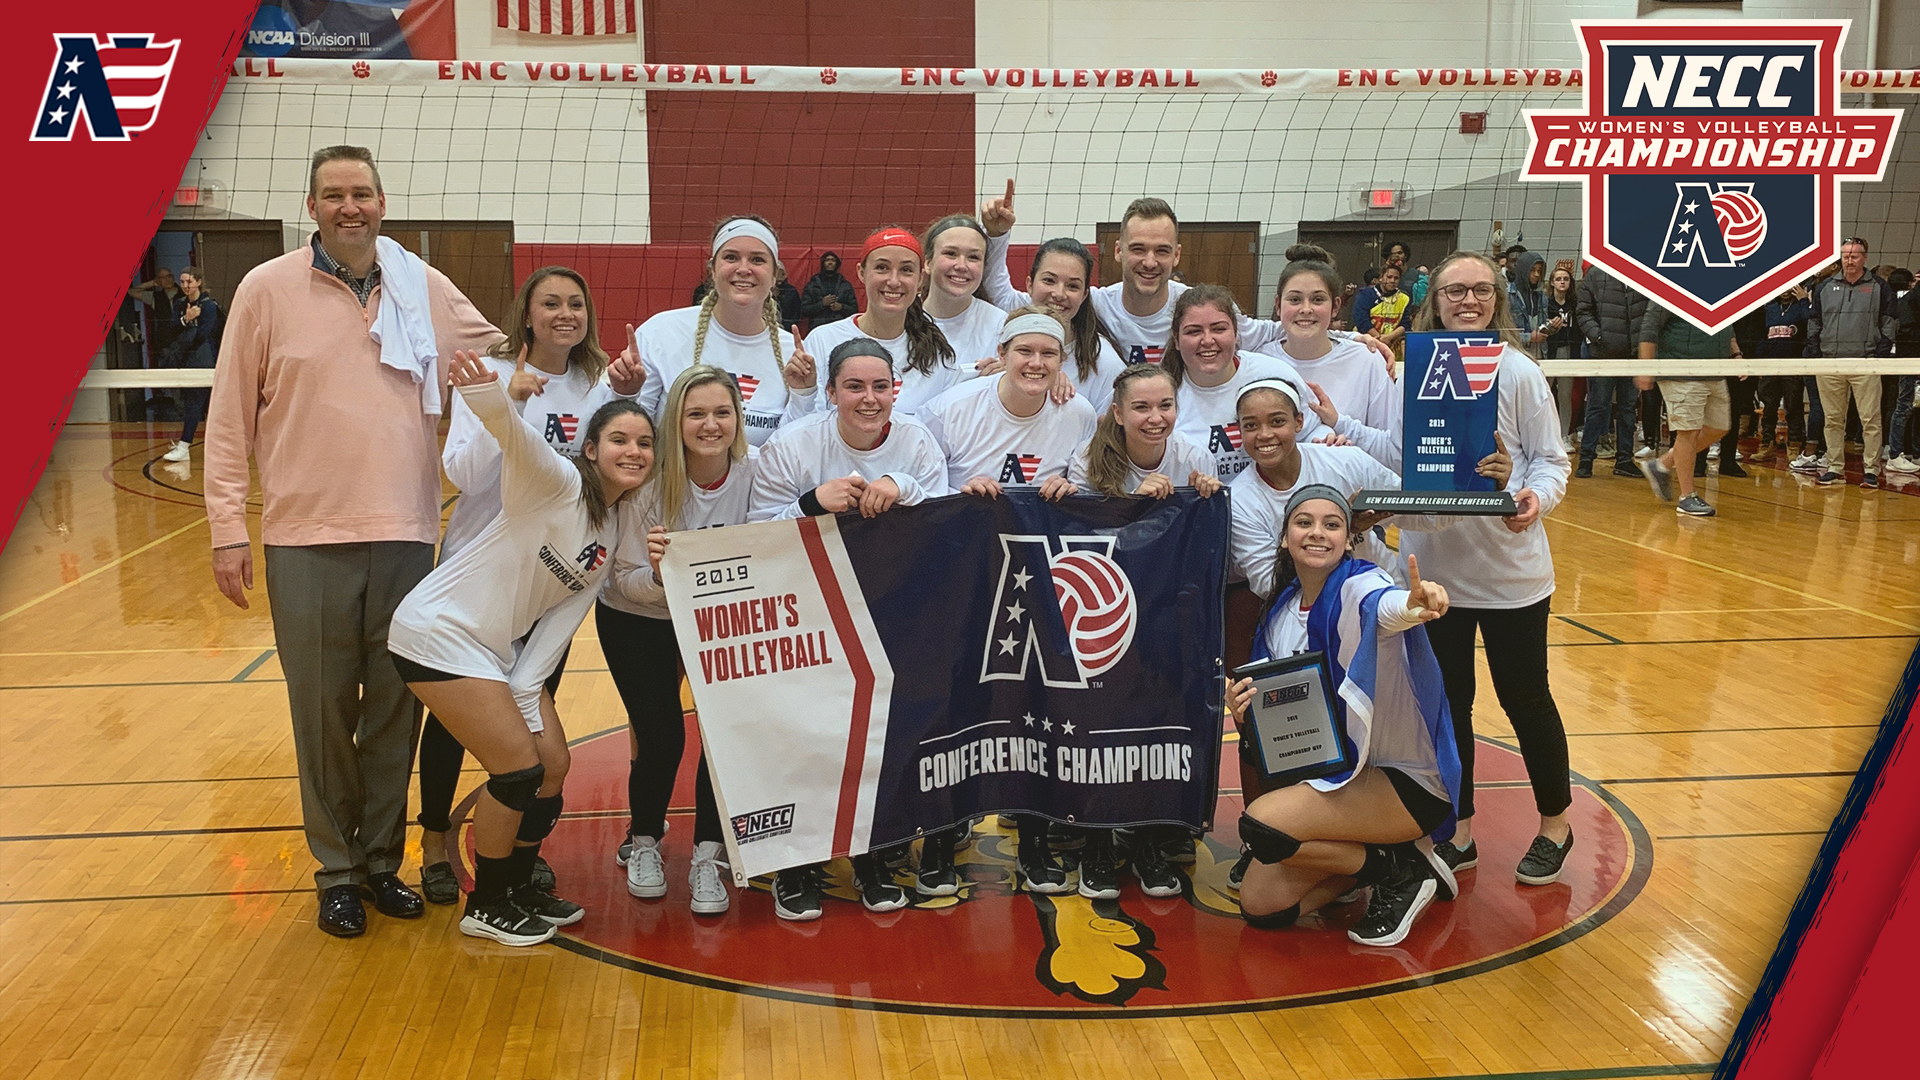 Eastern Nazarene Downs New England College, 3-1, to Claim 2019 NECC Women's Volleyball Championship